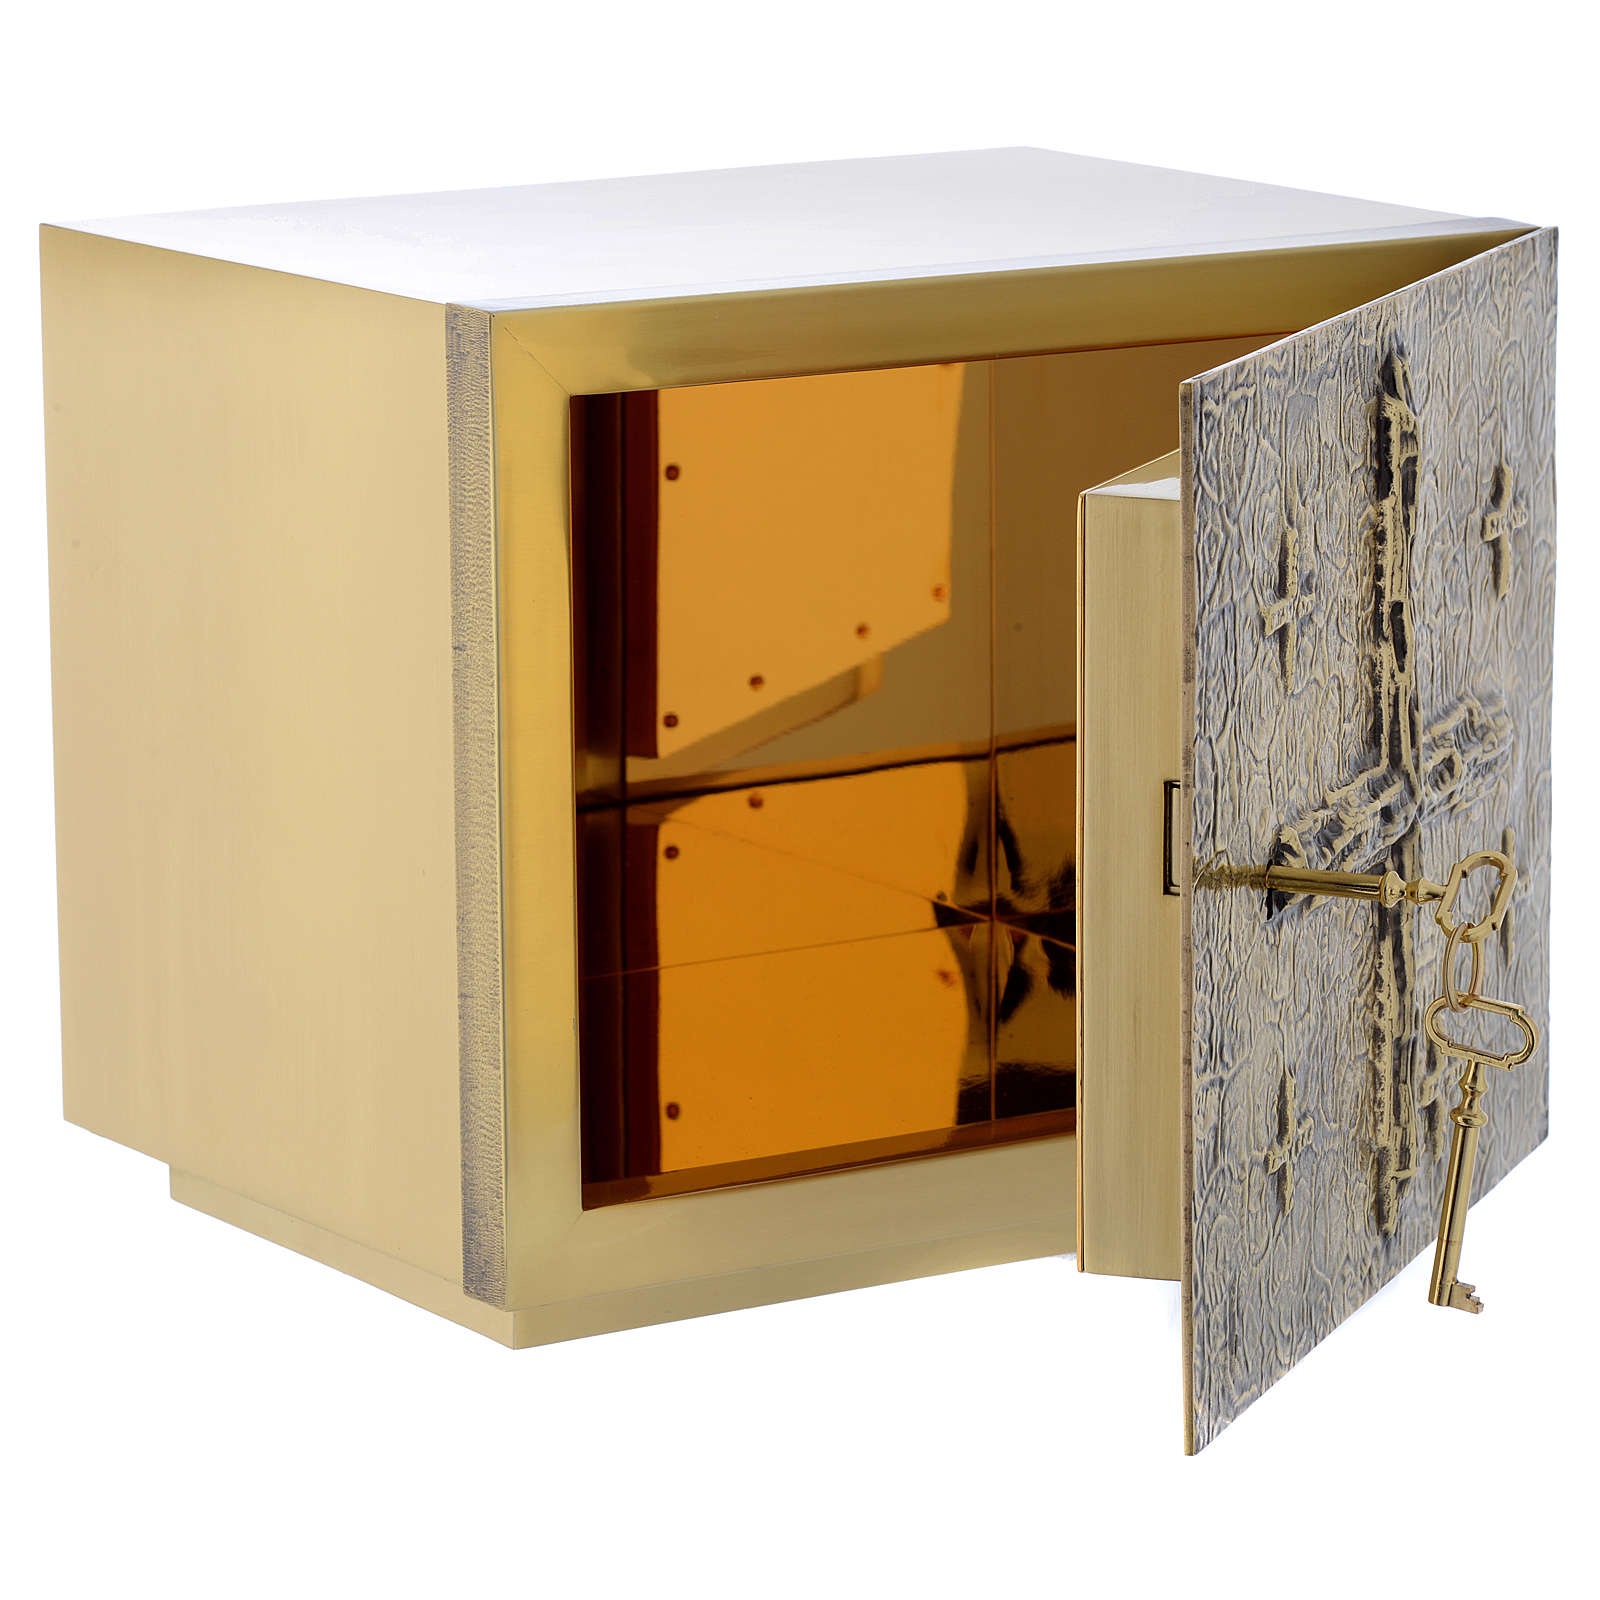 Altar Tabernacle with cross relief in gold plated brass, Molina 4